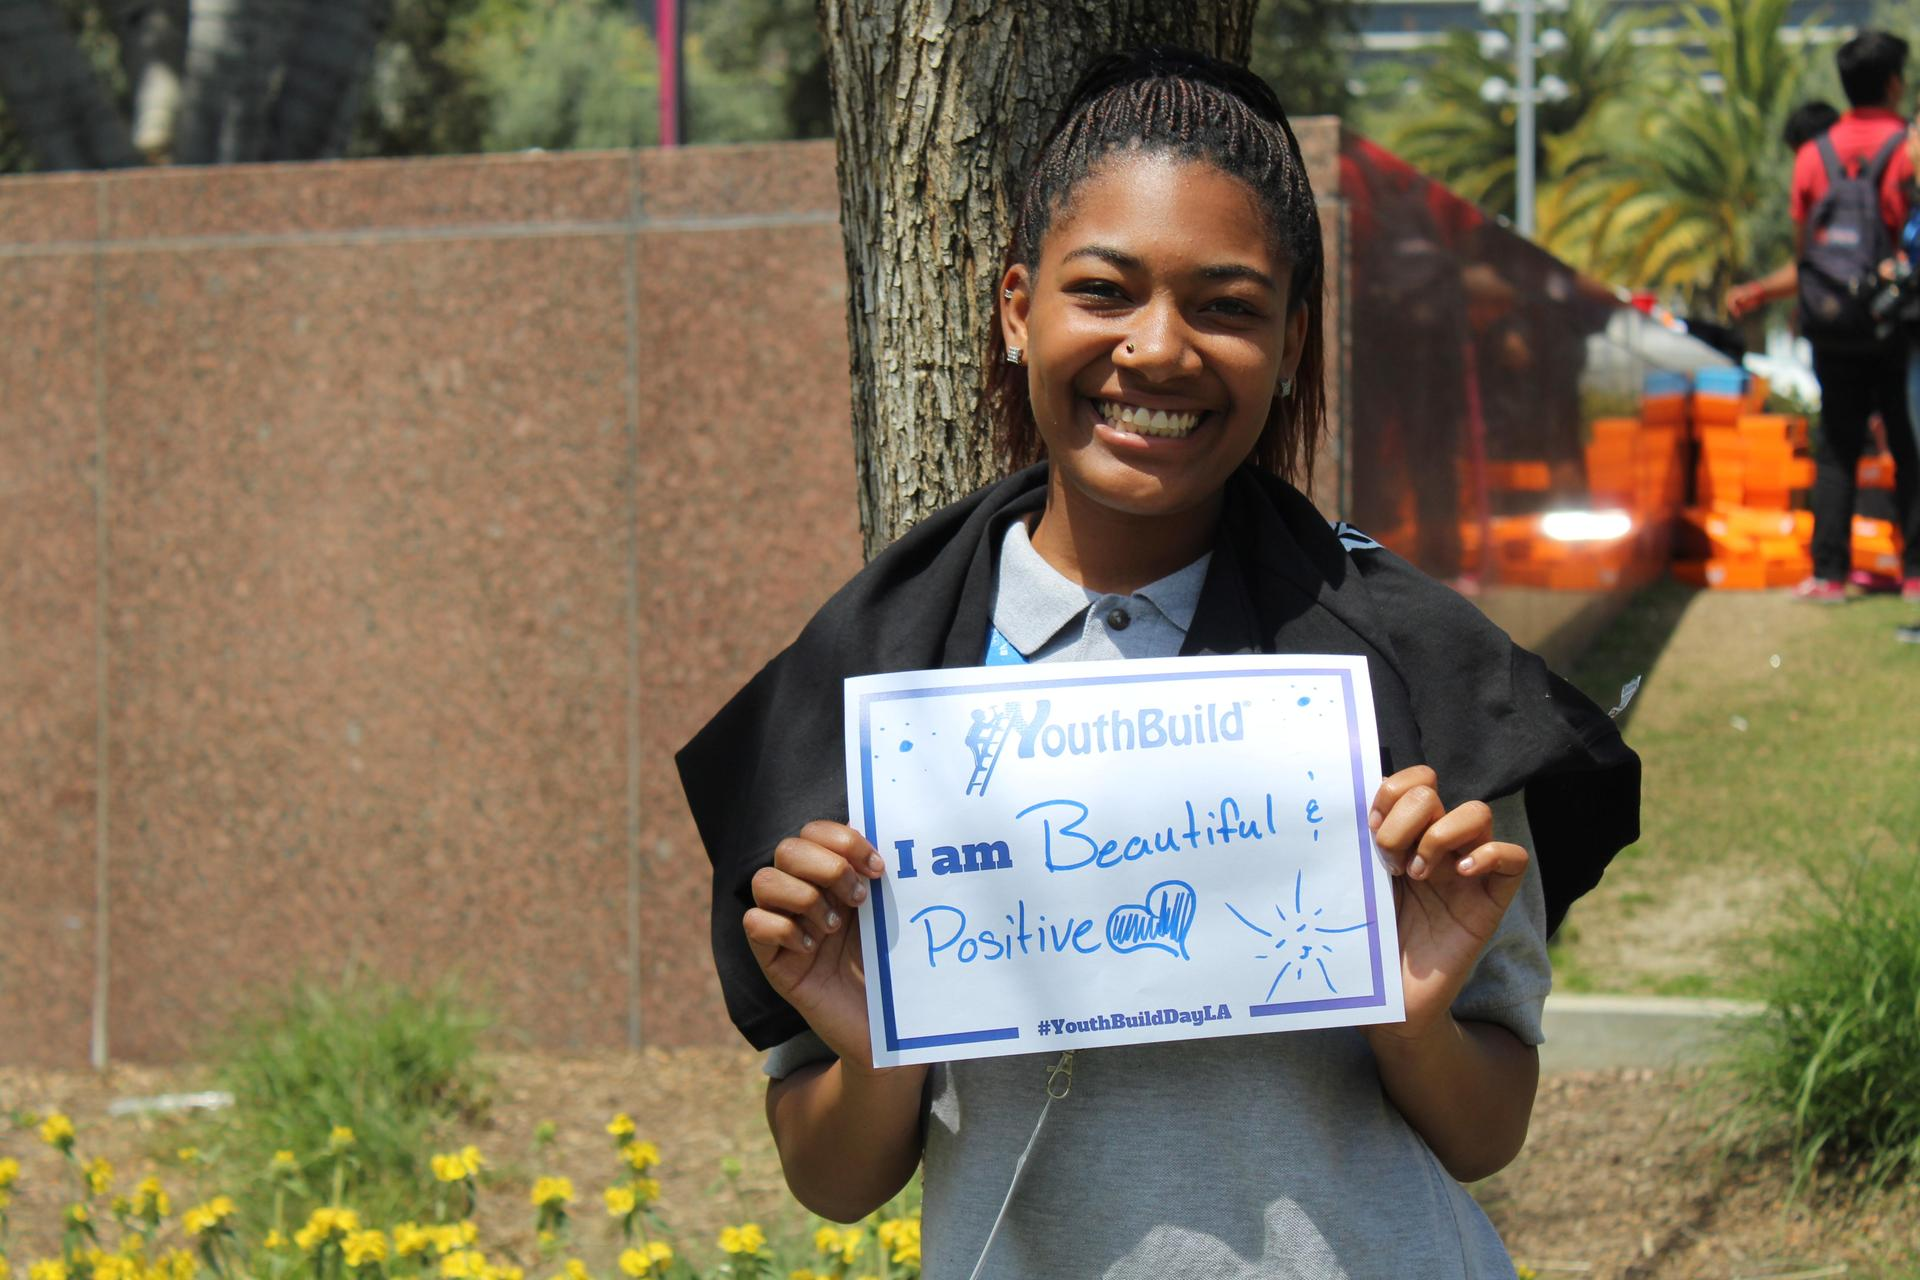 A South LA student holding a sign that says 'I am beautiful and positive'